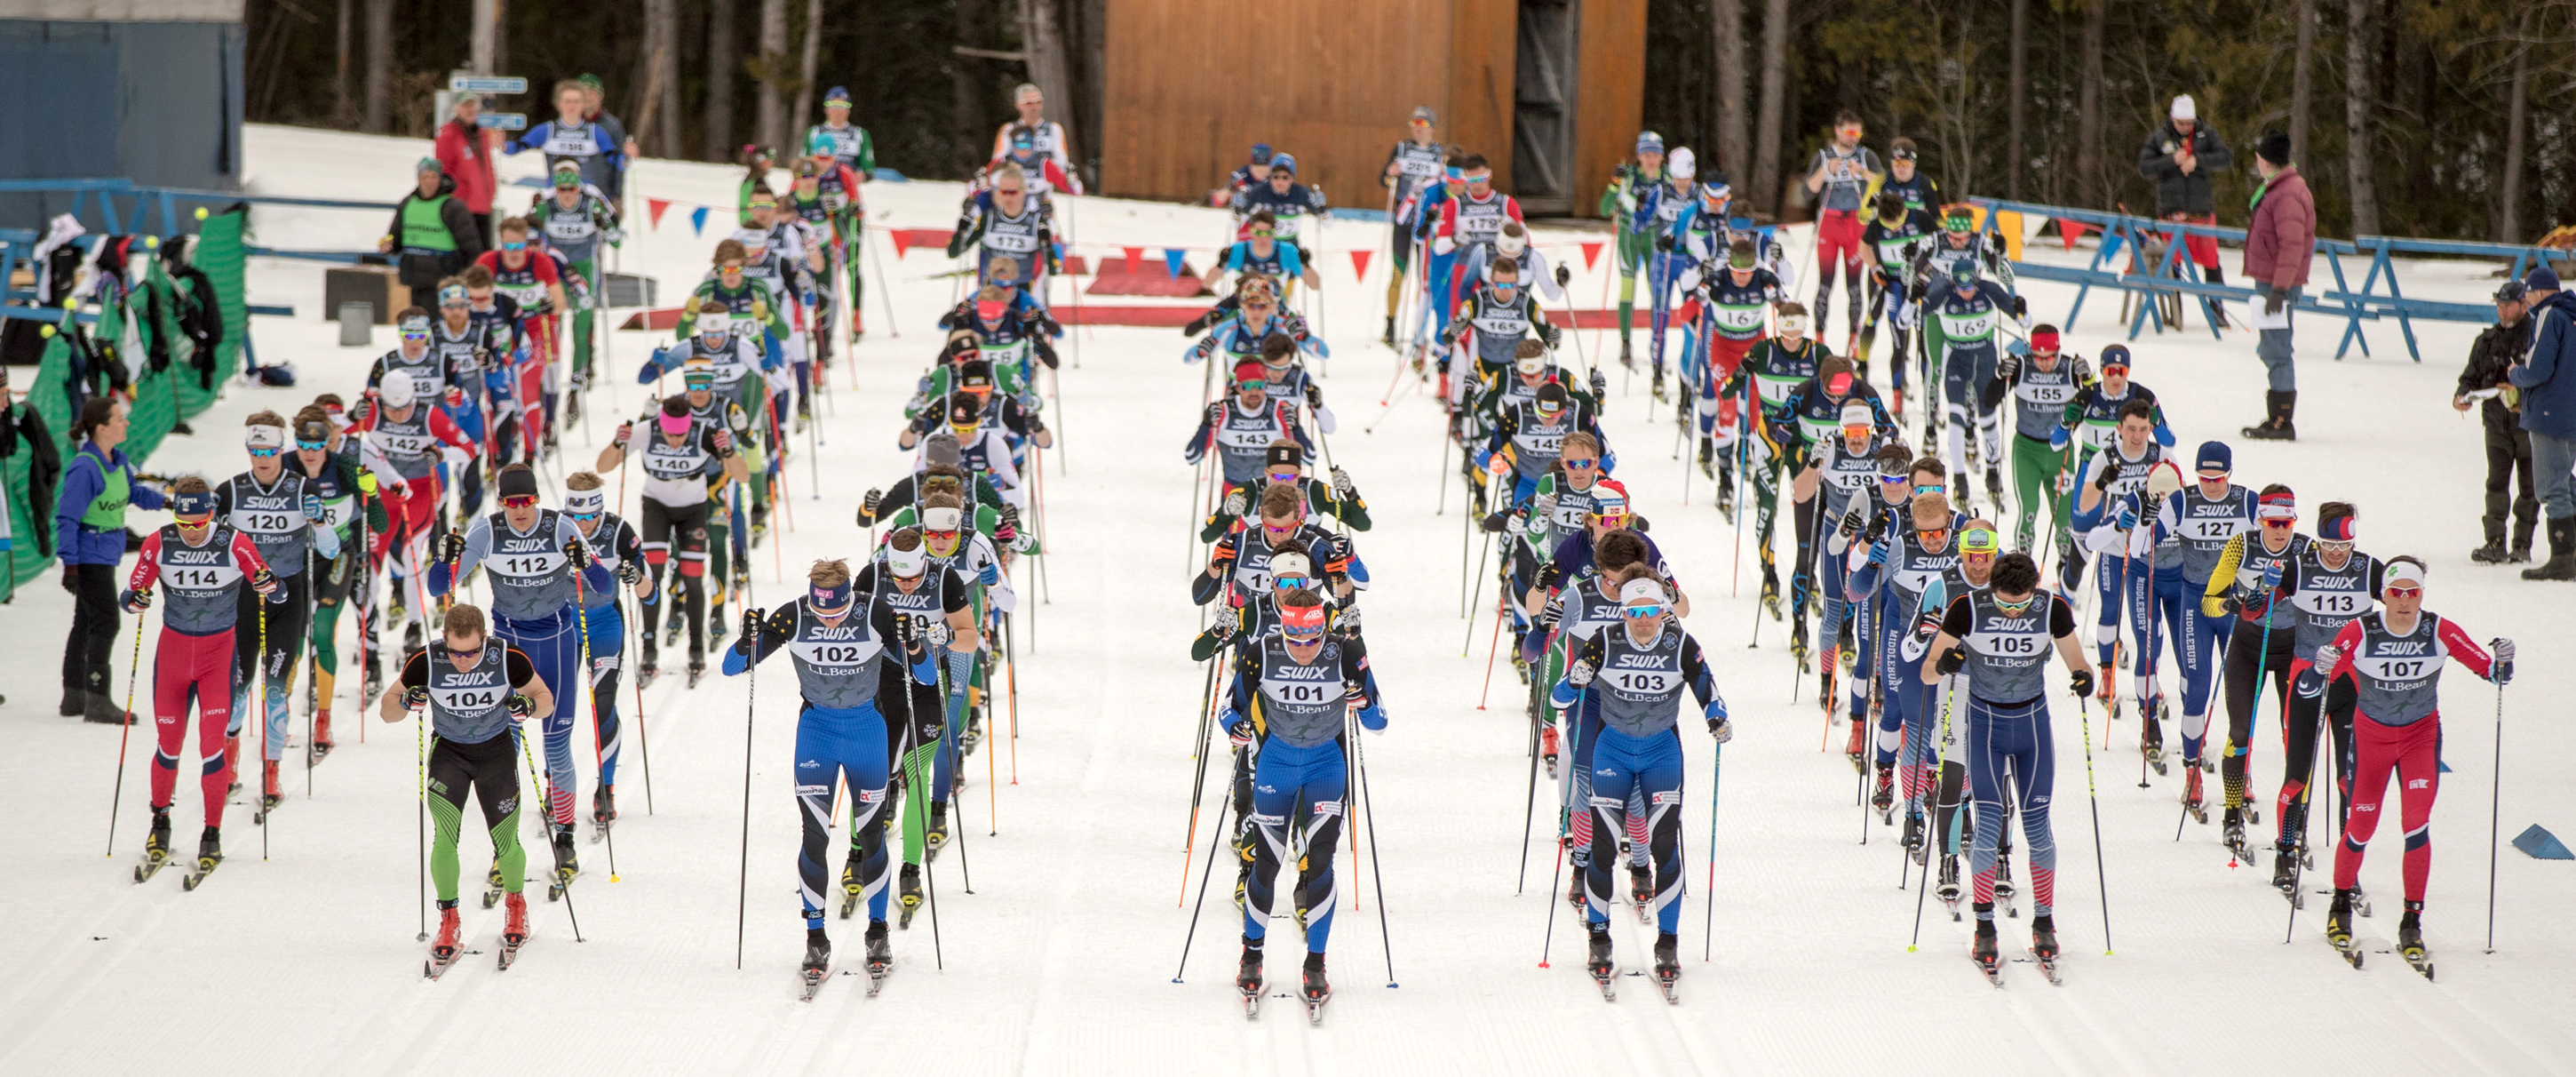 Cross Country Skis Nordic Skis The House Com >> 2019 U S Cross Country Championships Streaming